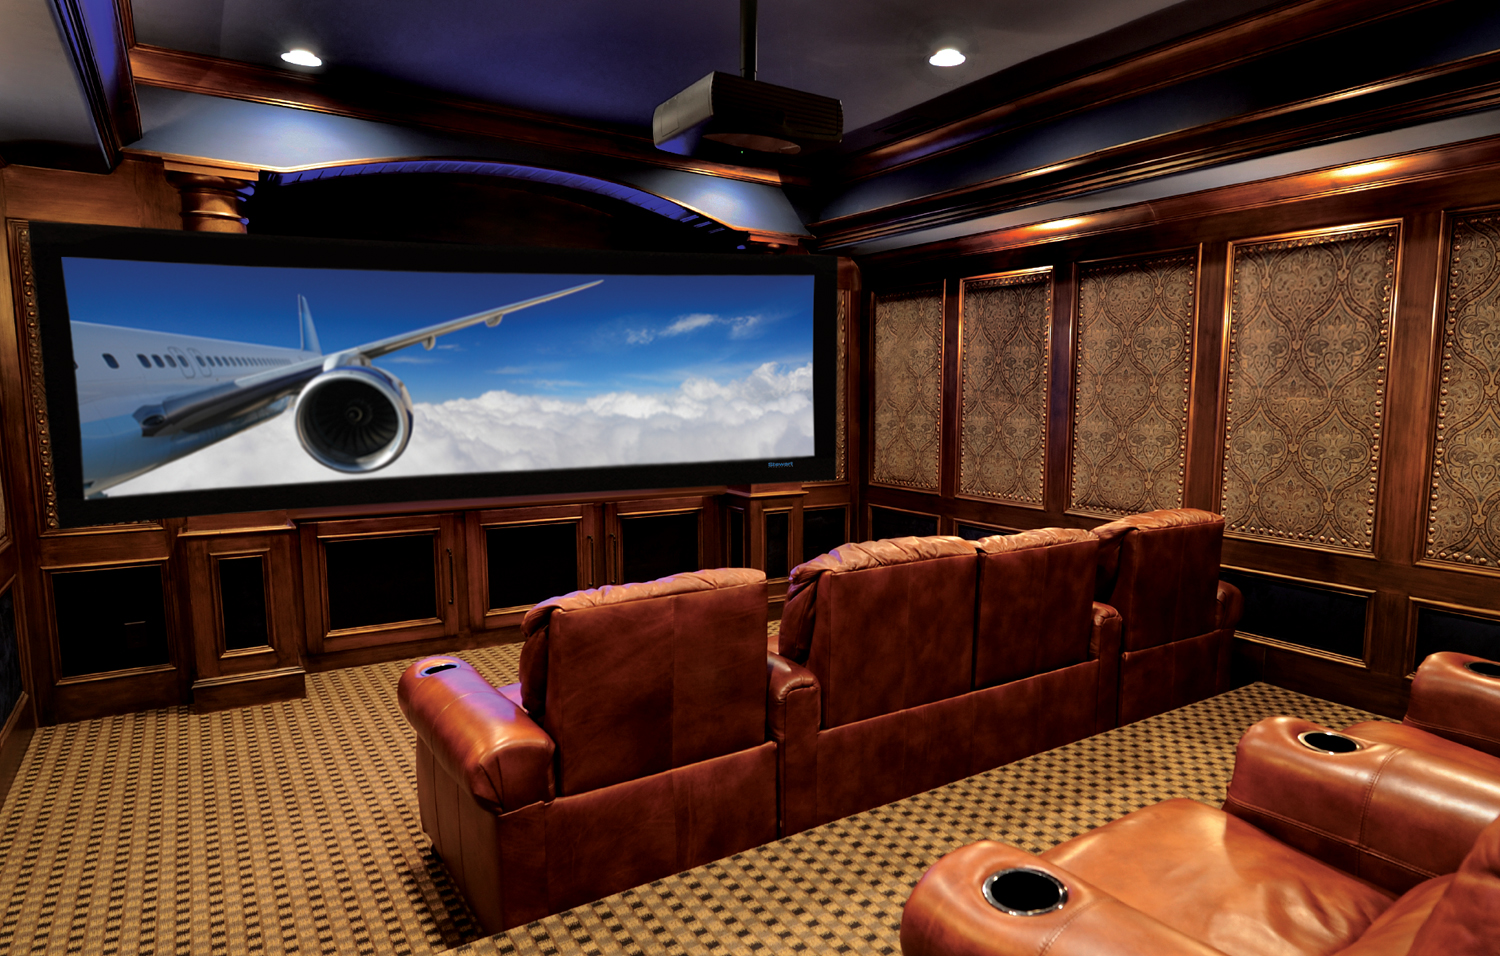 best home theater room design ideas 2017 youtube. home theater